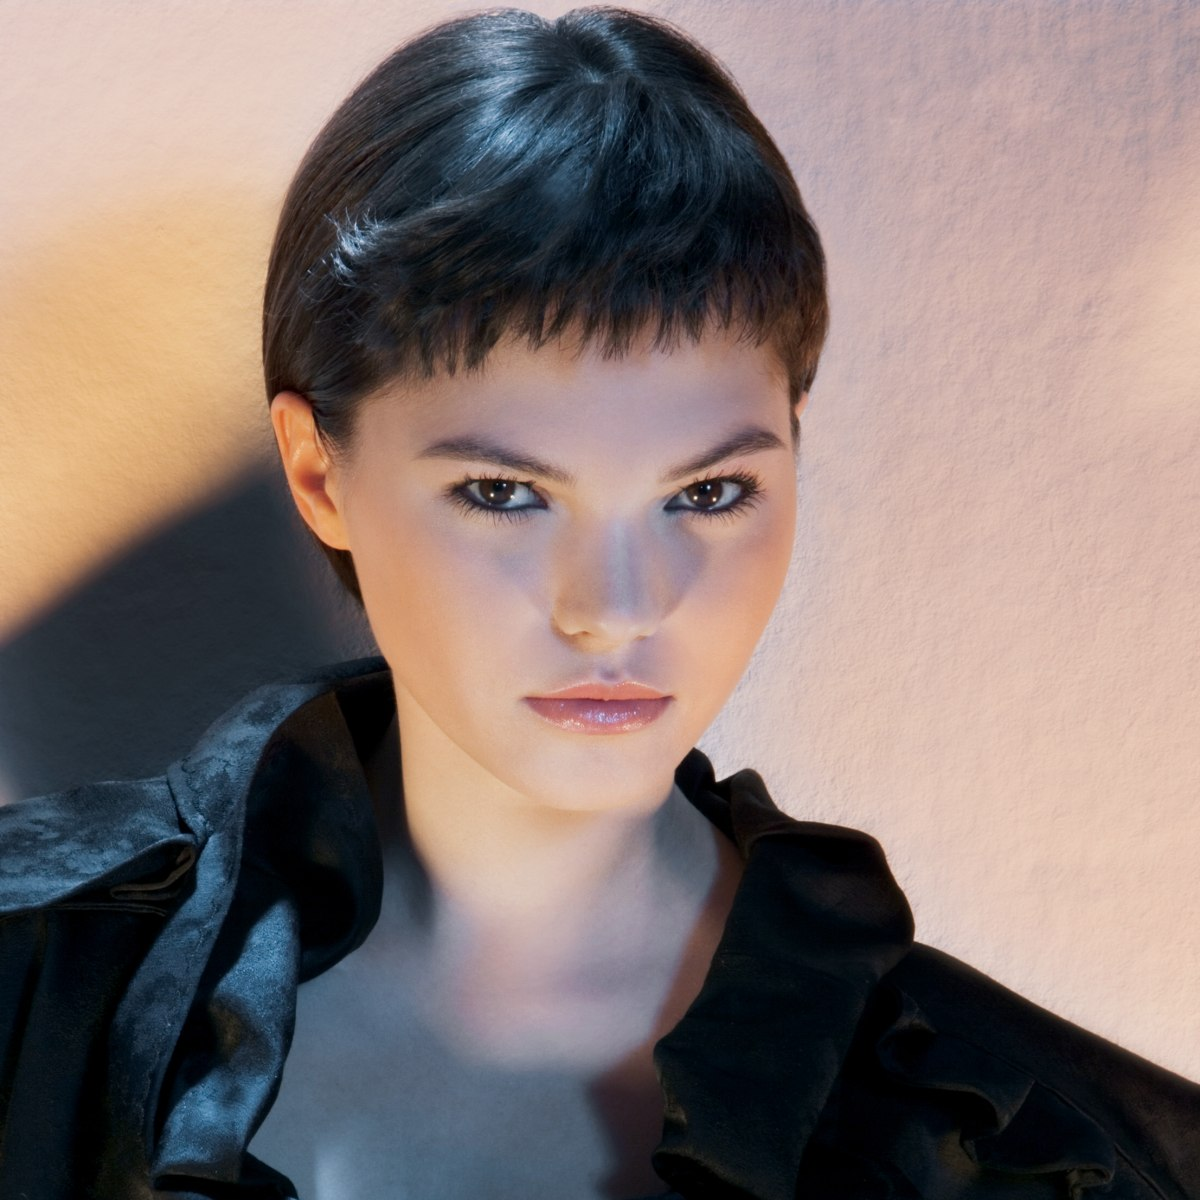 Short Hairstyles For Fine Hair Women | hairstylegalleries.com